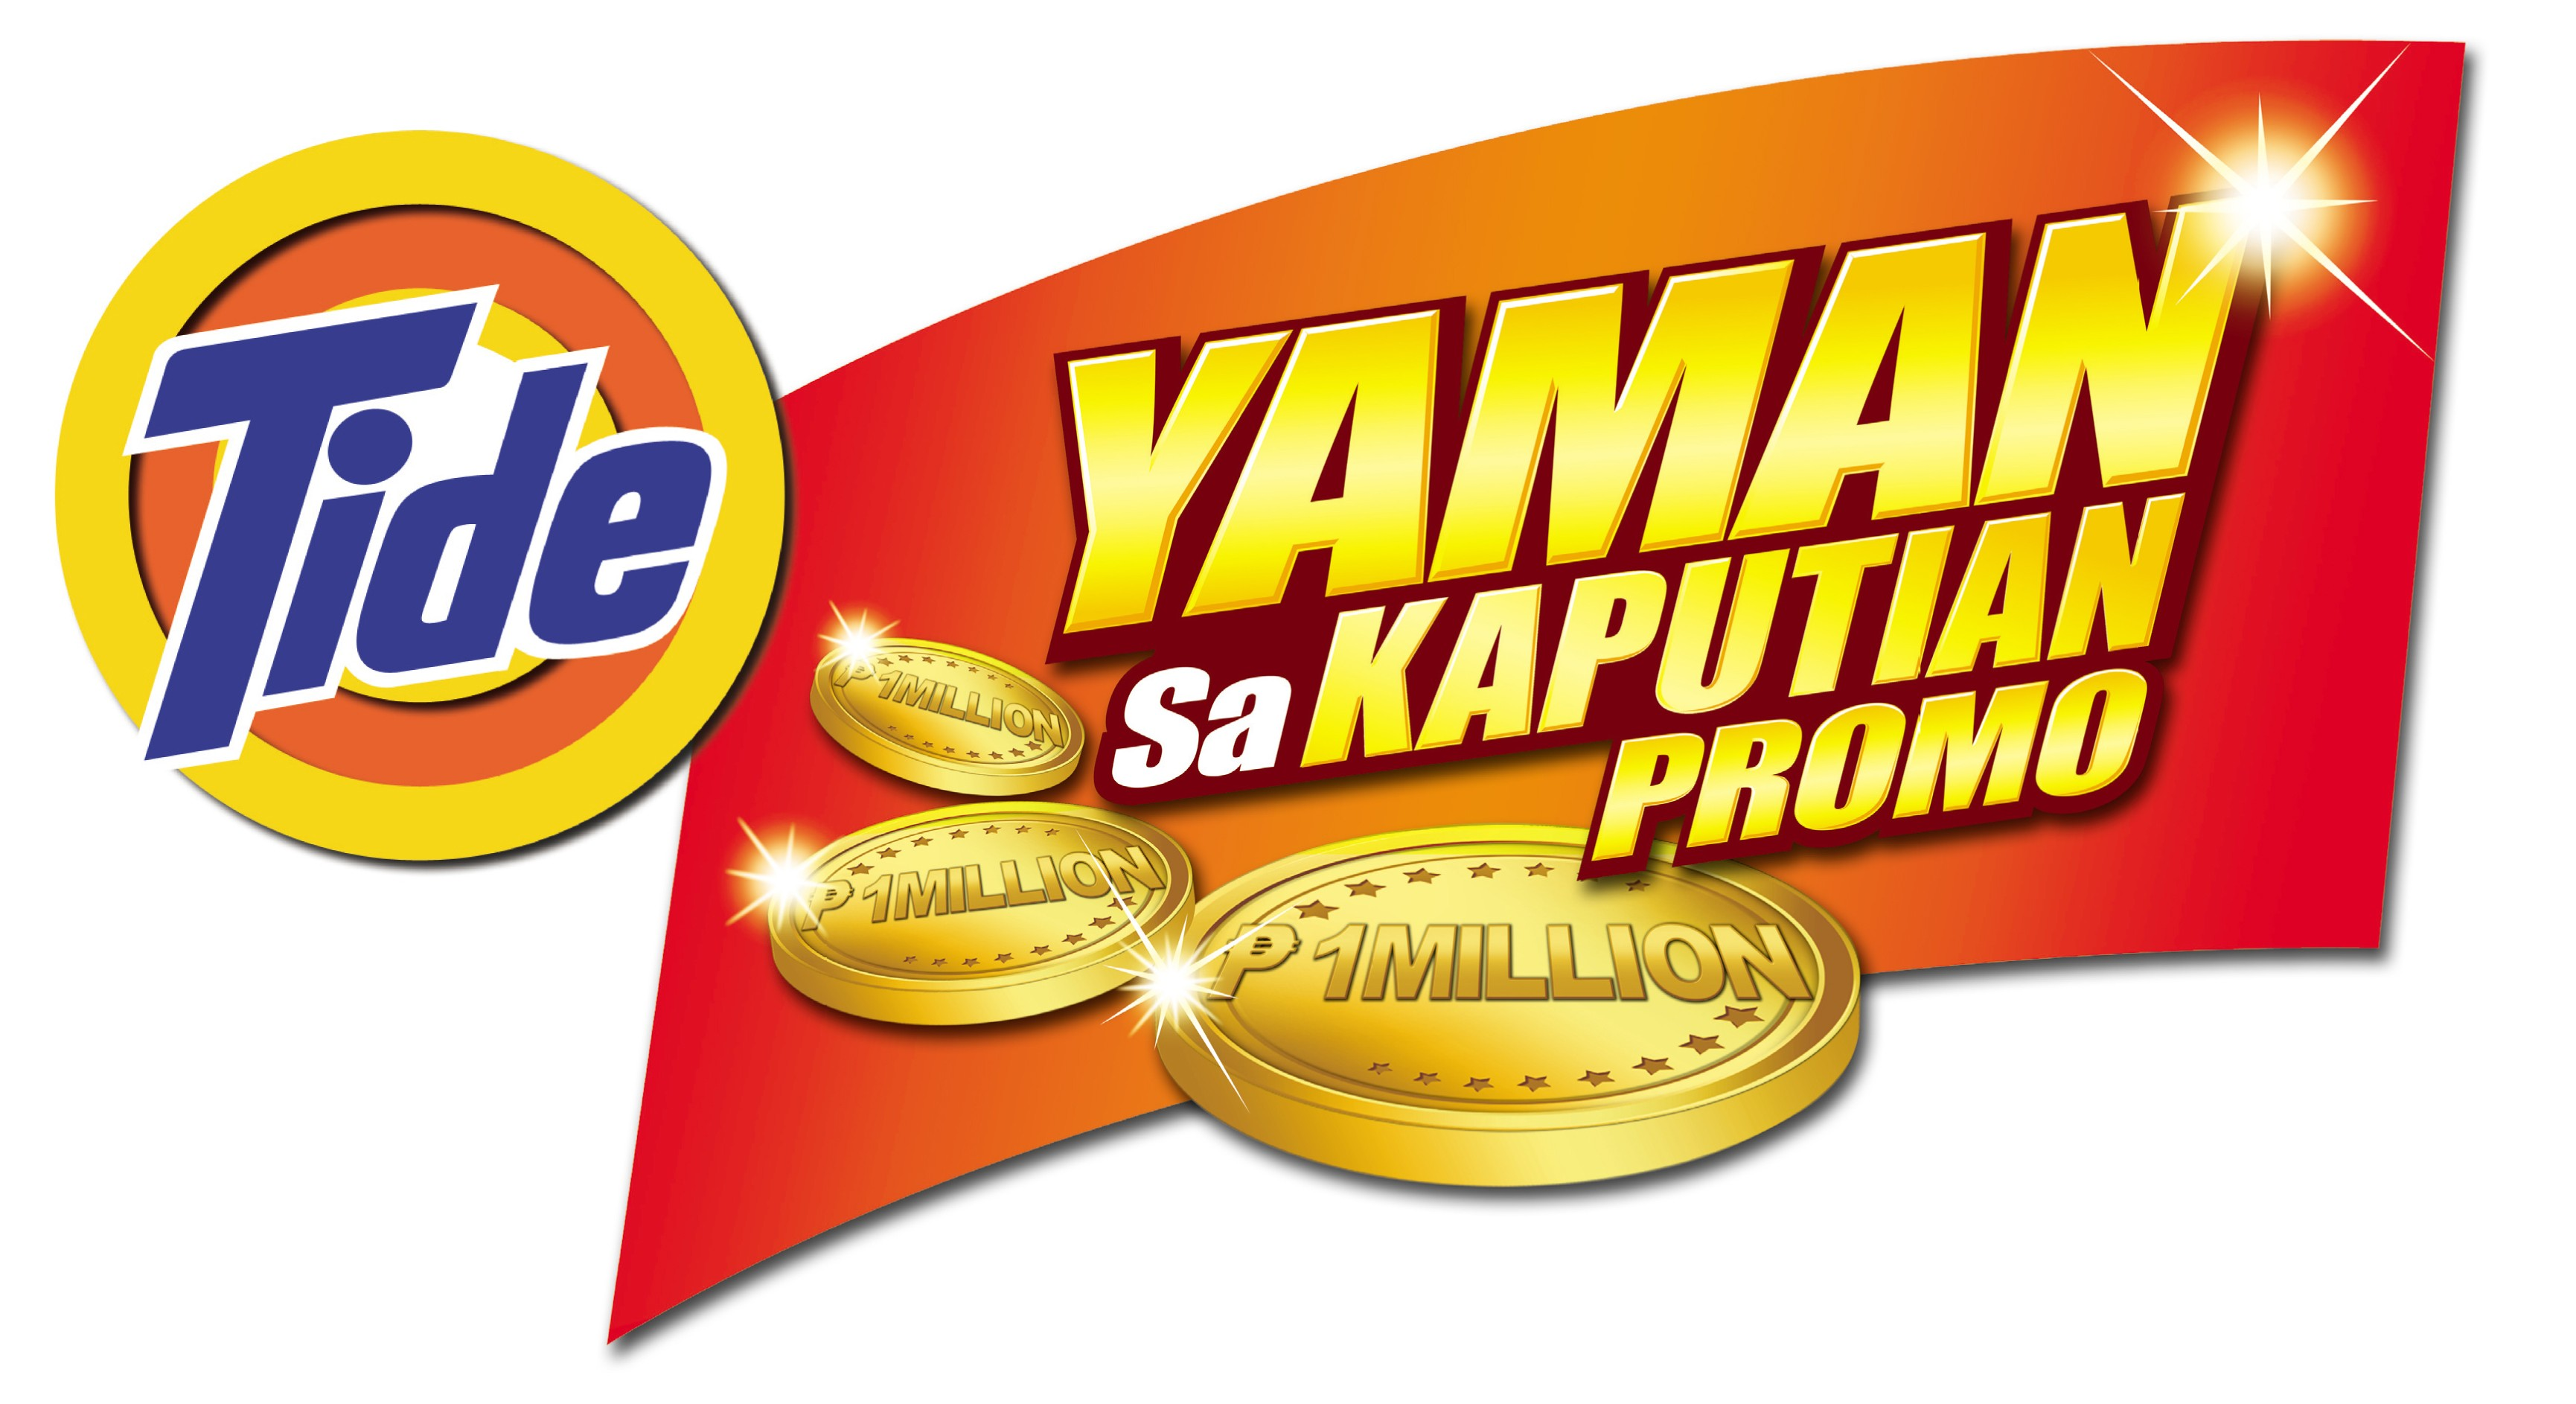 Get rich the clean way with Safeguard, Ariel and Tide's Yaman Promo